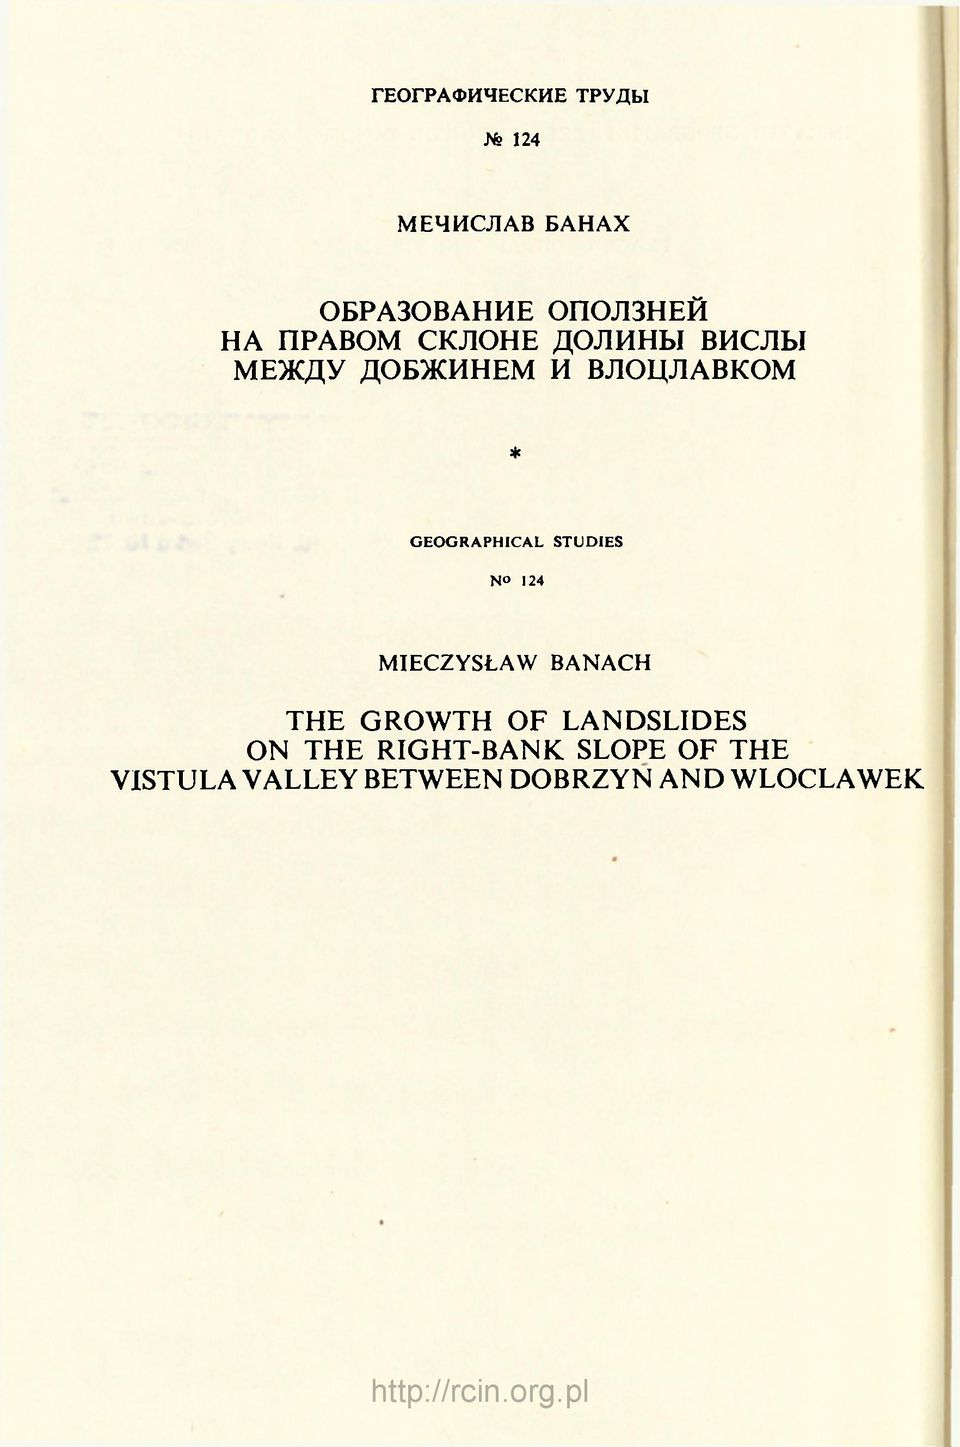 GEOGRAPHICAL STUDIES 124 MIECZYSŁAW BANACH THE GROWTH OF